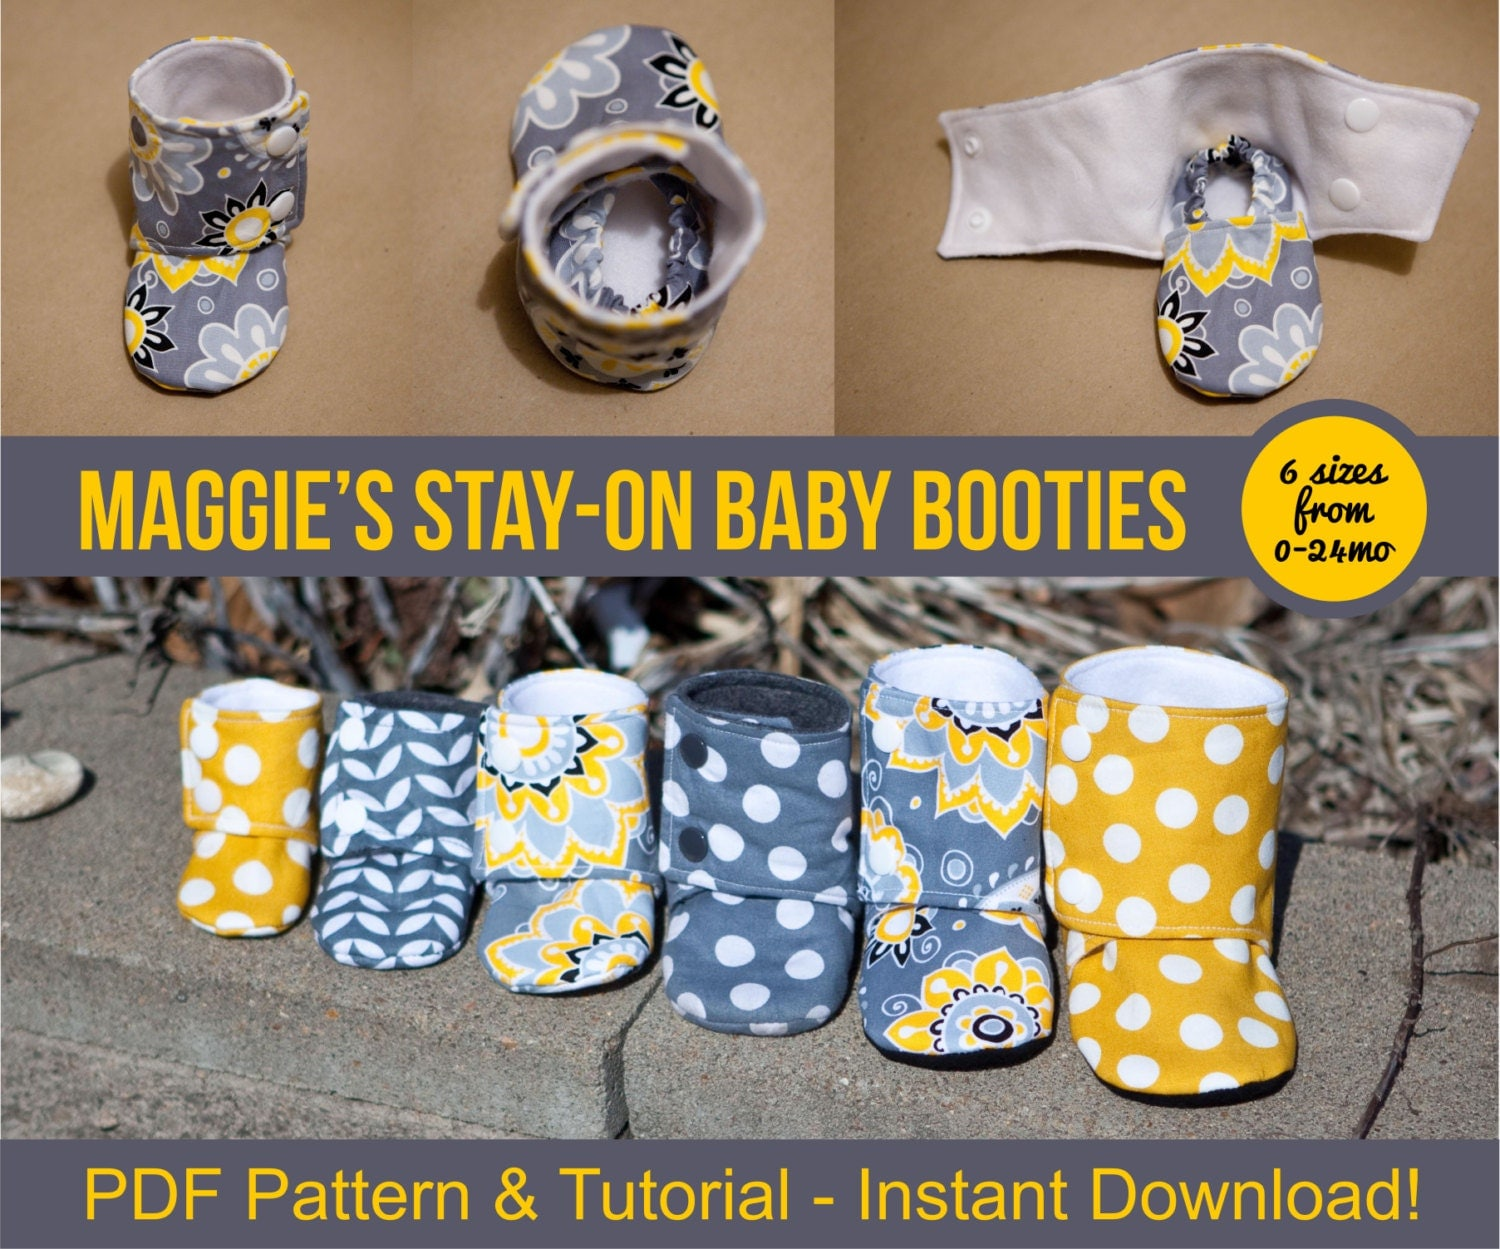 Maggie's Stay-On Baby Booties Sewing Tutorial Printable